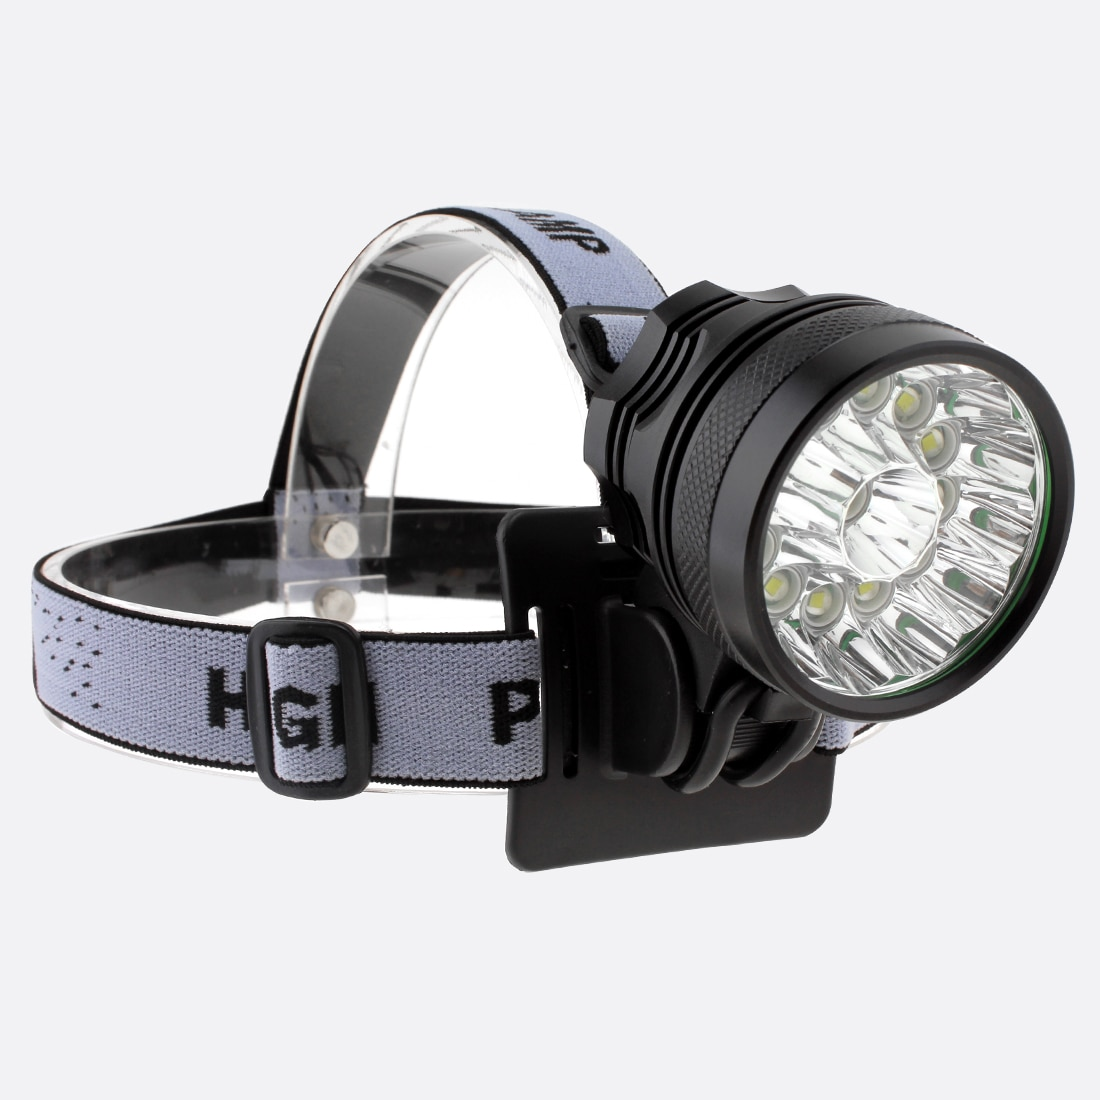 SecurityIng  Bicycle Headlights XM-L T6 LED Bike  Lamp Cycling Torch 6500LM with 8.4V 6400mAh Battery Bicycle Lights enlarge